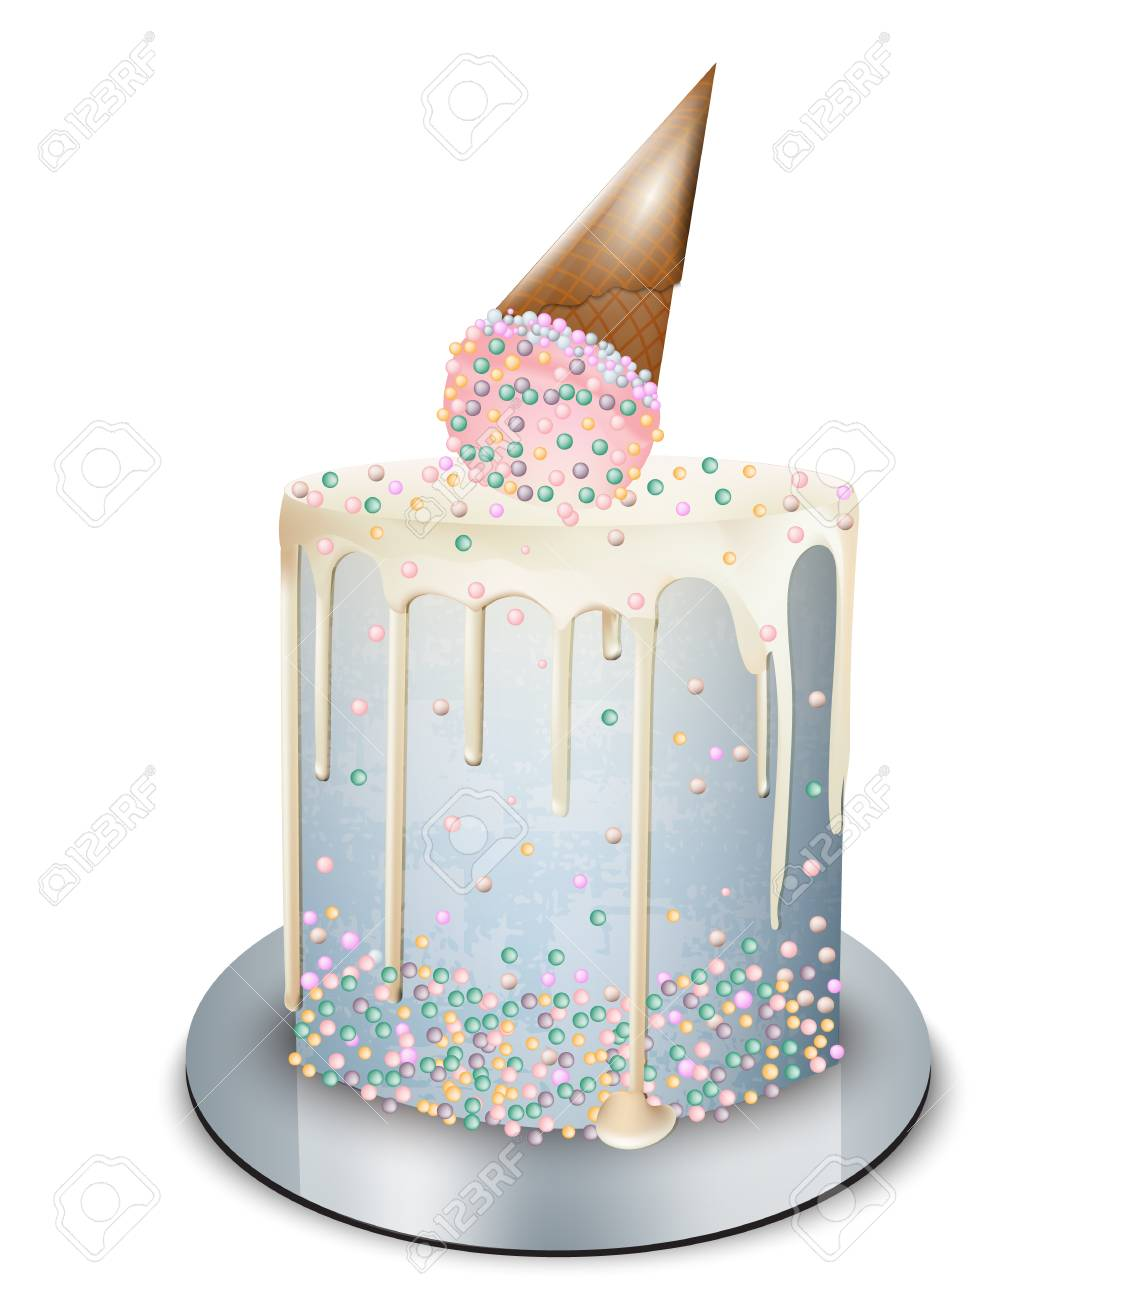 Modern Cake Ice Cream Cone On Top Vector Realistic Birthday Anniversary Wedding Royal